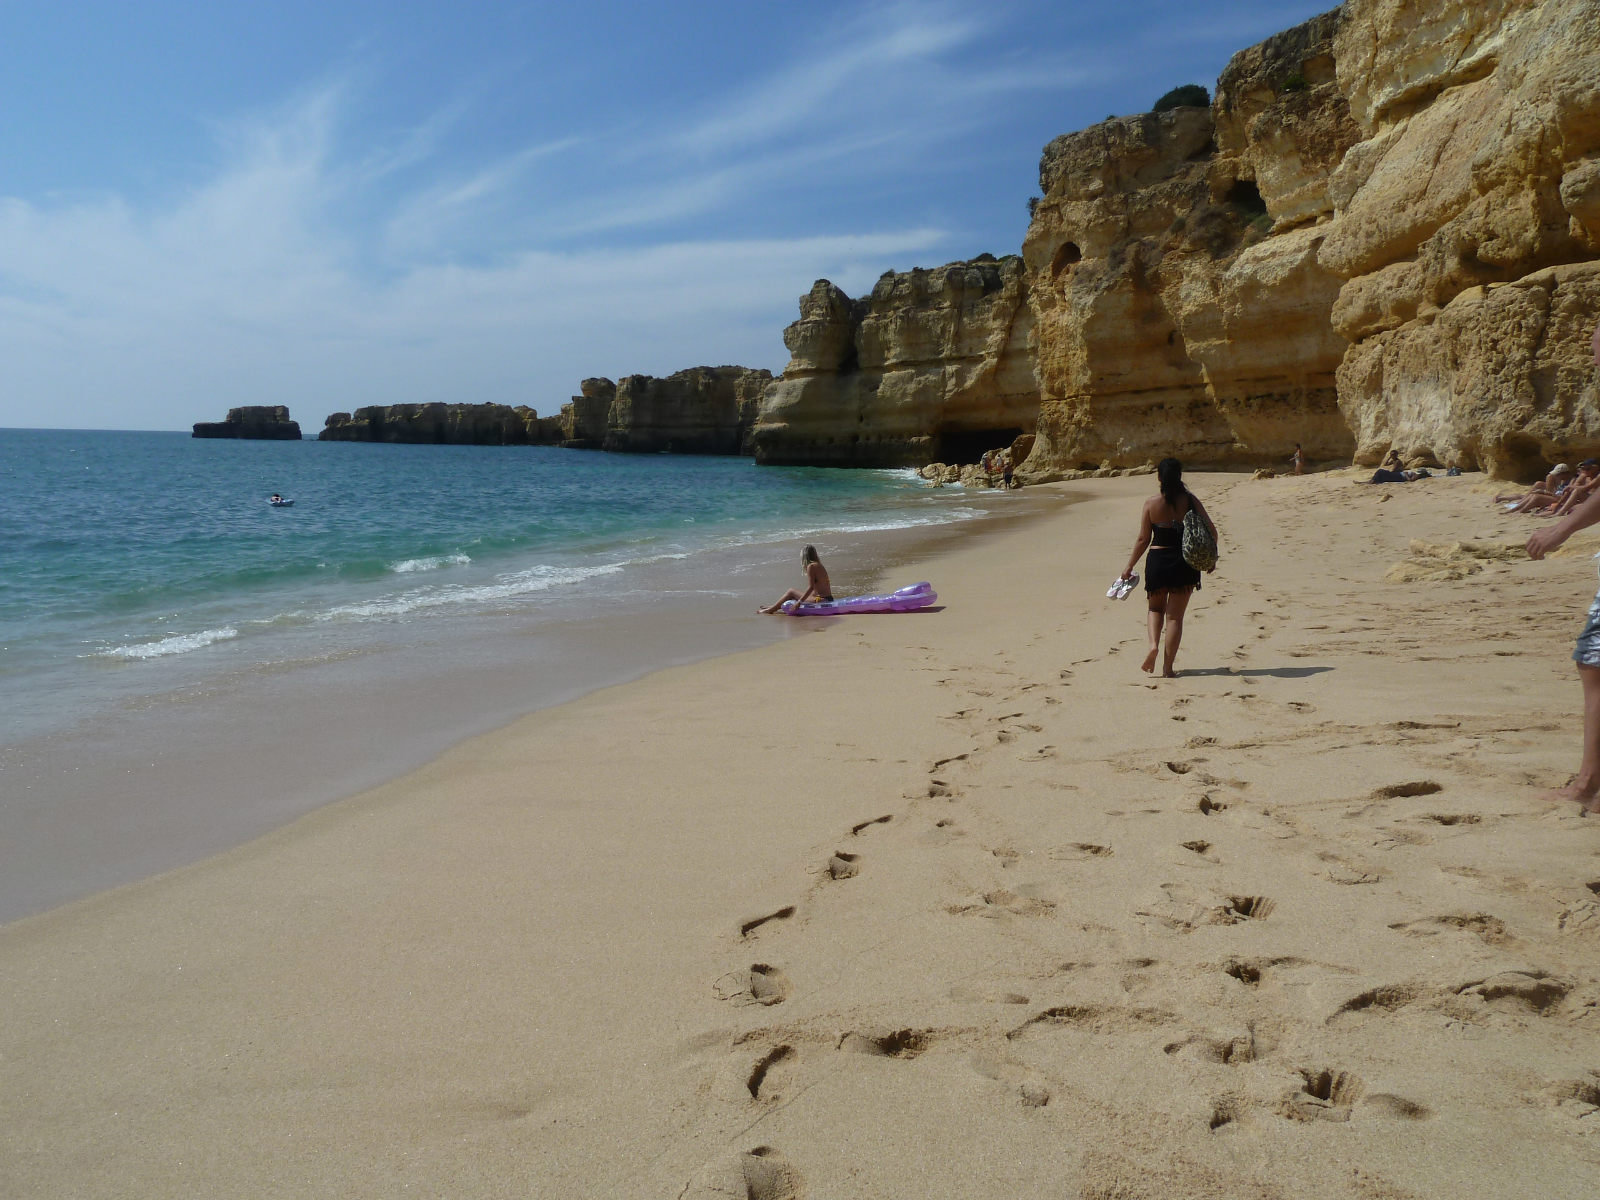 Coelha beach. One of many Blue Flag Beaches in Albufeira's Gale & Sesmarias.